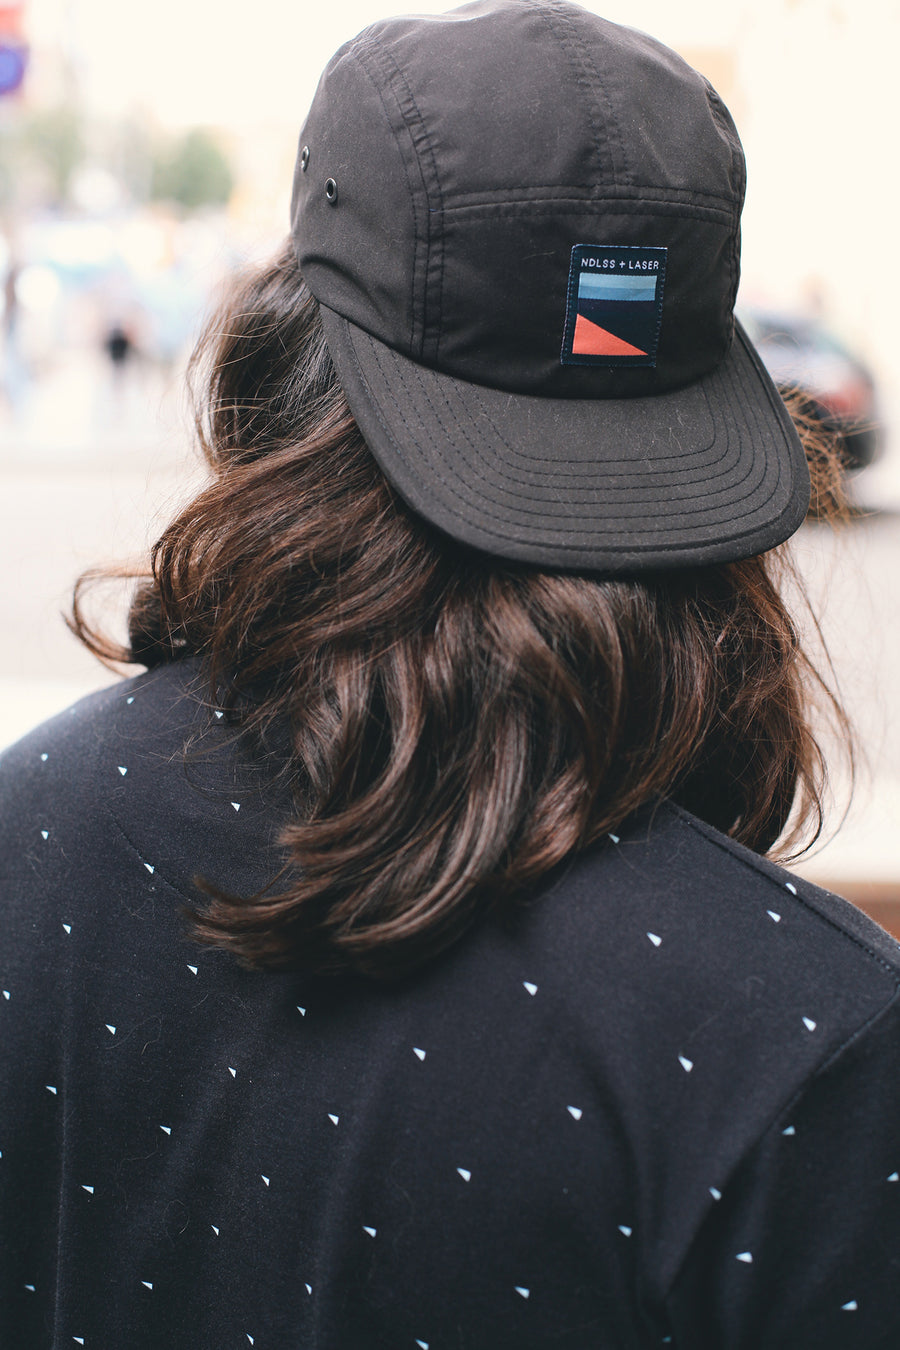 NDLSS+LASER 5 PANEL HAT BLACK